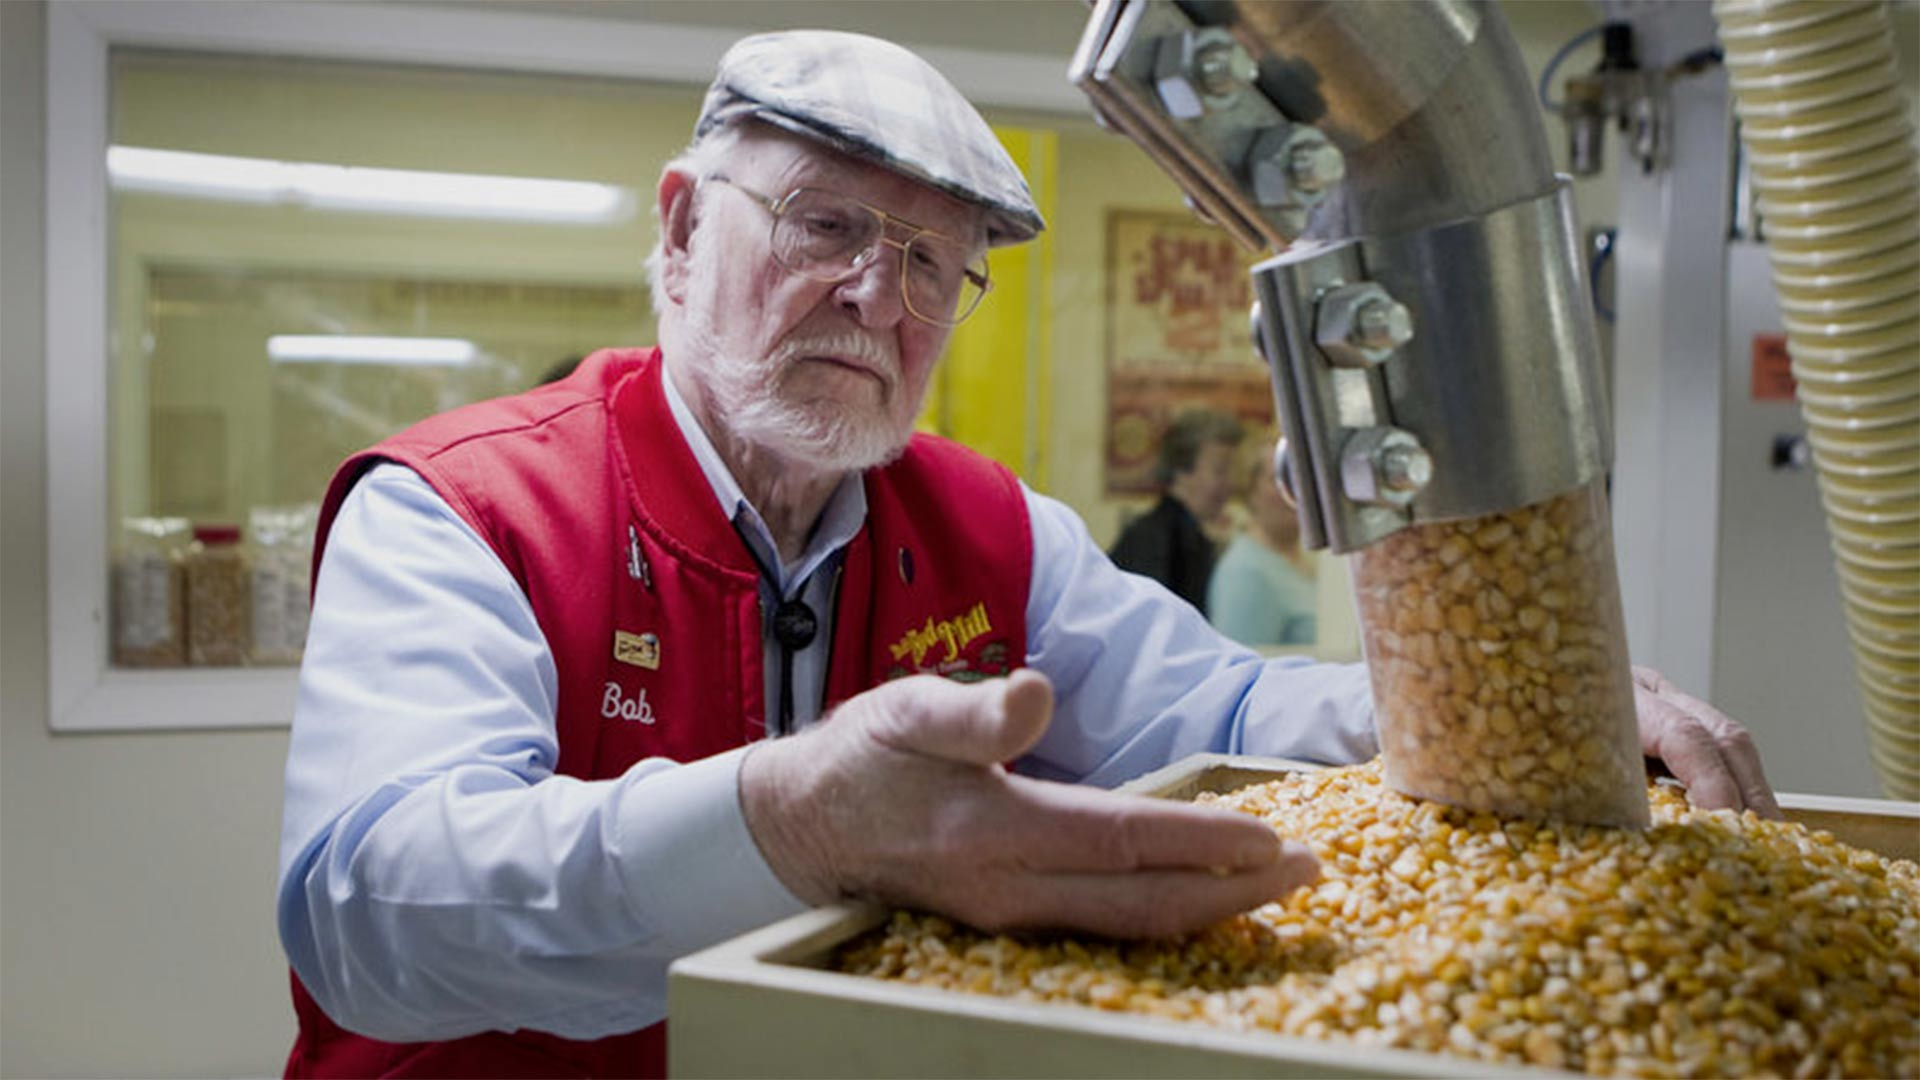 Bob Moore, founder of Bob's Red Mill Natural Foods, inspects grains at the company's facility in Milwaukie, Ore. The pioneering manufacturer of gluten-free products invests in whole grains as well as beans, seeds, nuts, dried fruits, spices and herbs.